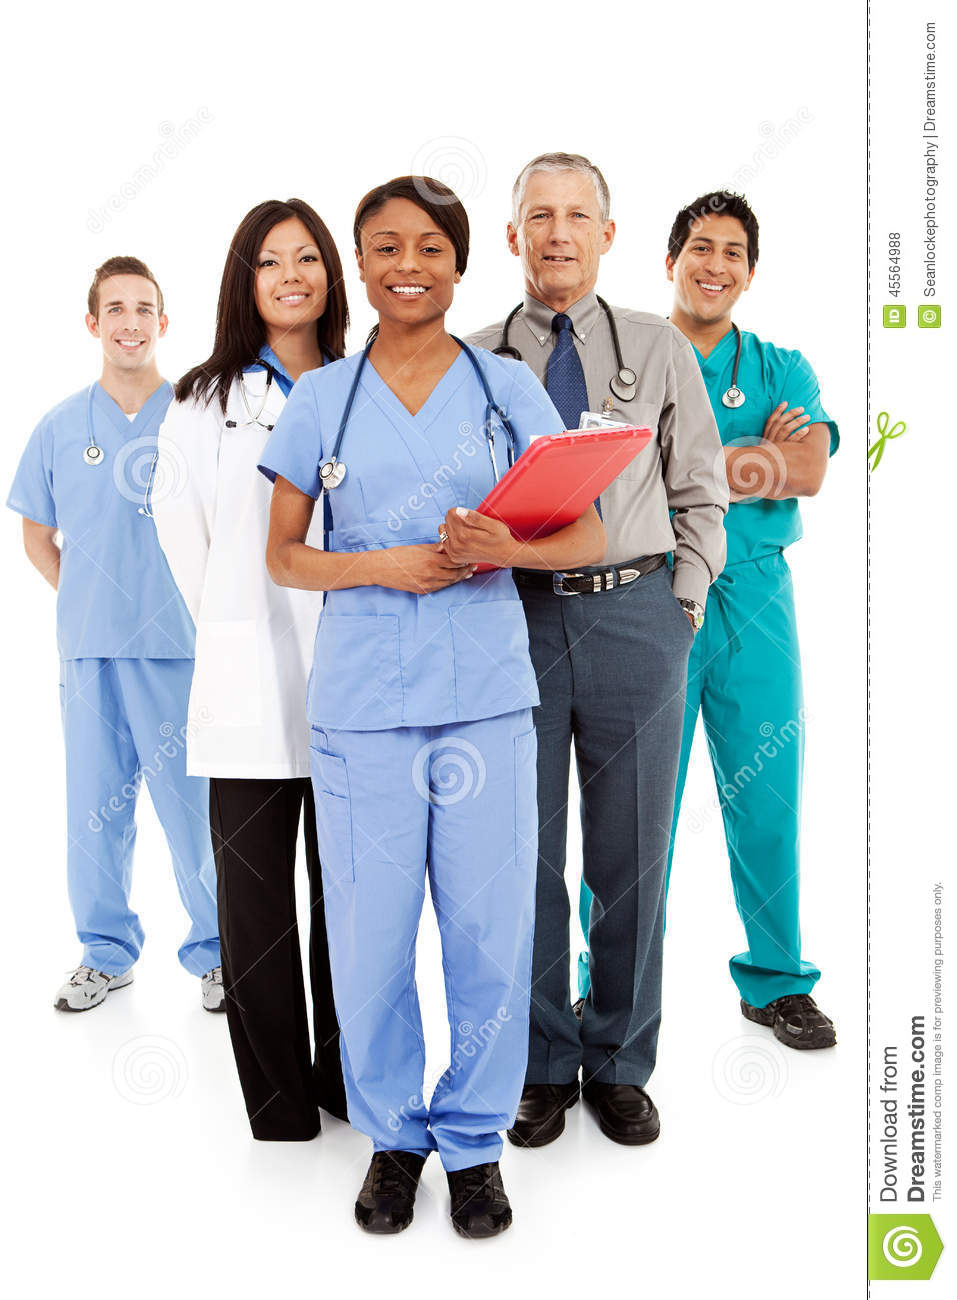 as a case manager : a person (as a social worker or nurse) who assists in the planning, coordination, monitoring, and evaluation of medical services for a patient with emphasis on quality of care, continuity of services, and cost-effectiveness also: caseworker.